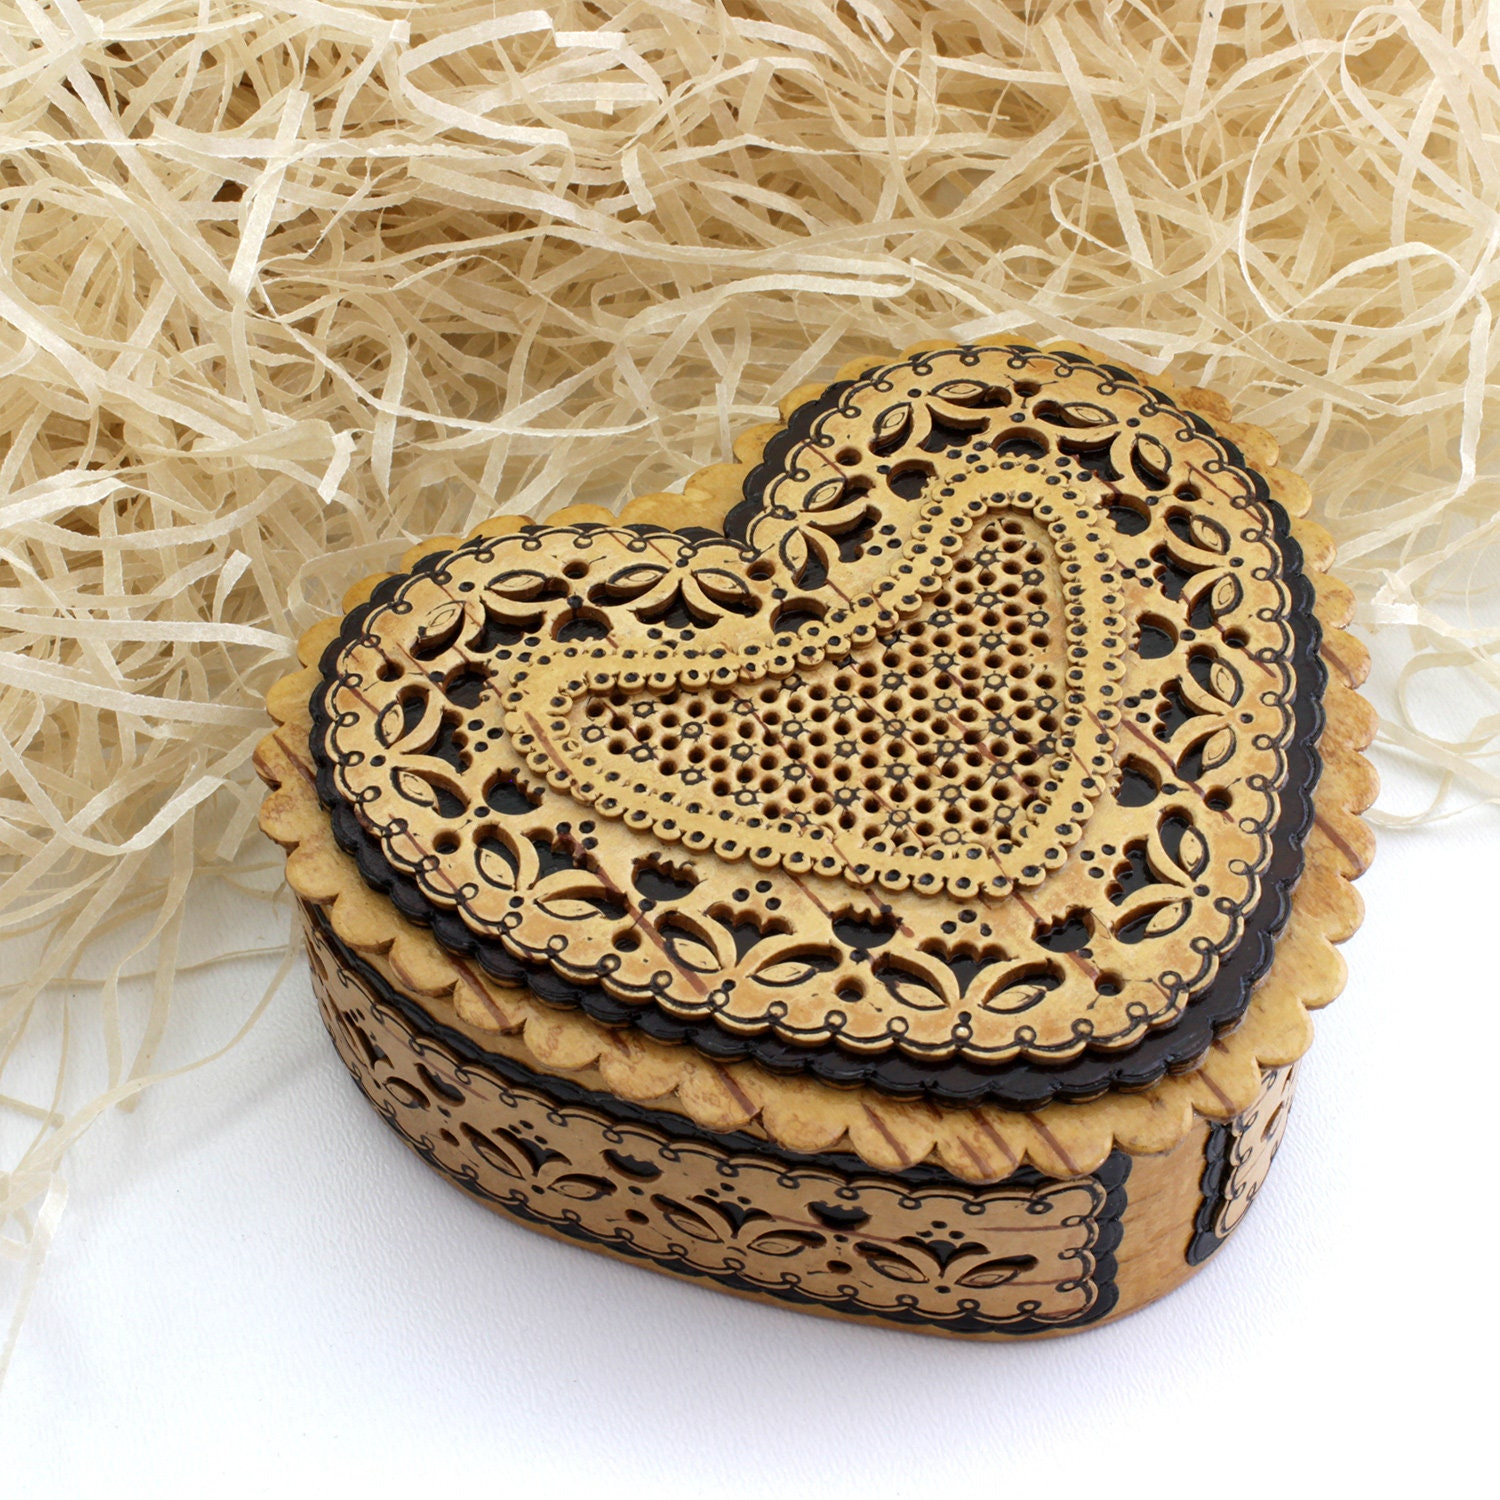 Heart-shaped box made of natural birch bark material. Inside is an image of an angel. Can be personalized